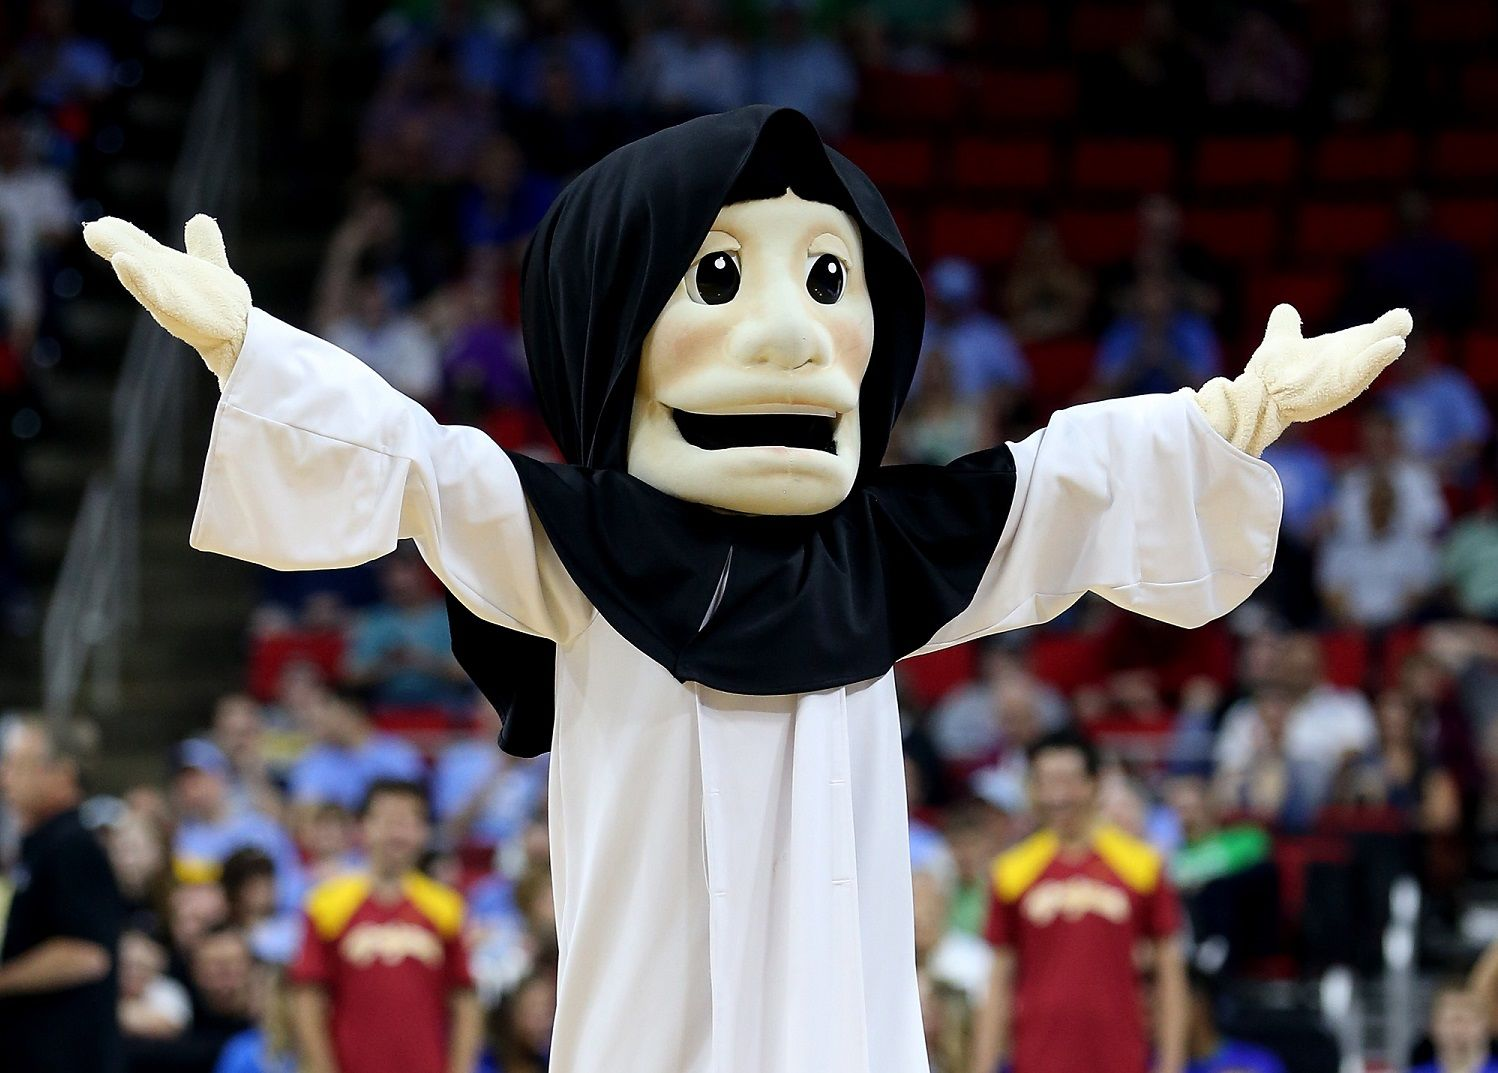 RALEIGH, NC - MARCH 17:  Providence Friars mascot Friar Dom performs in the first half against the USC Trojans during the first round of the 2016 NCAA Men's Basketball Tournament at PNC Arena on March 17, 2016 in Raleigh, North Carolina.  (Photo by Streeter Lecka/Getty Images)